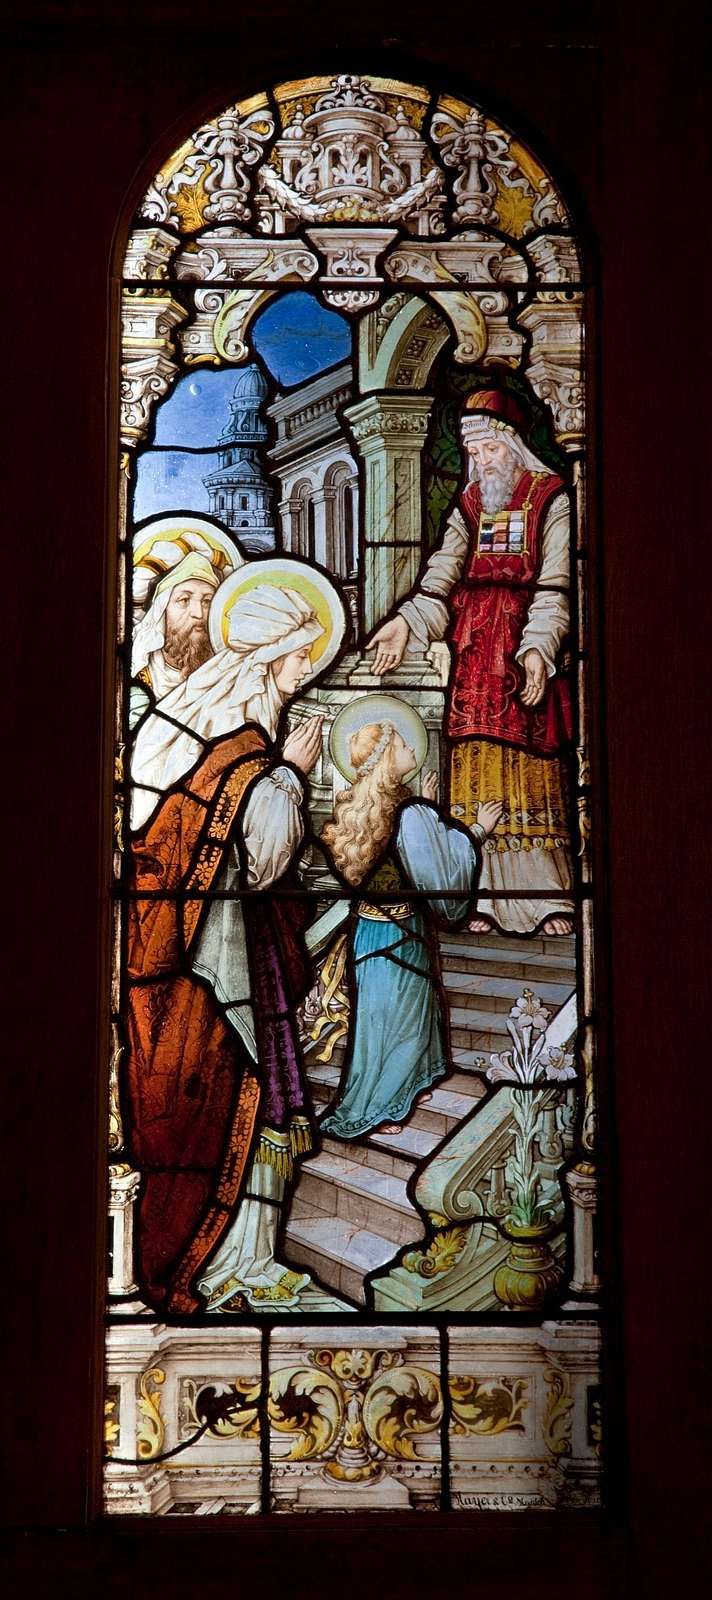 Stained glass window, Cathedral of the Immaculate Conception, Mobile, Alabama